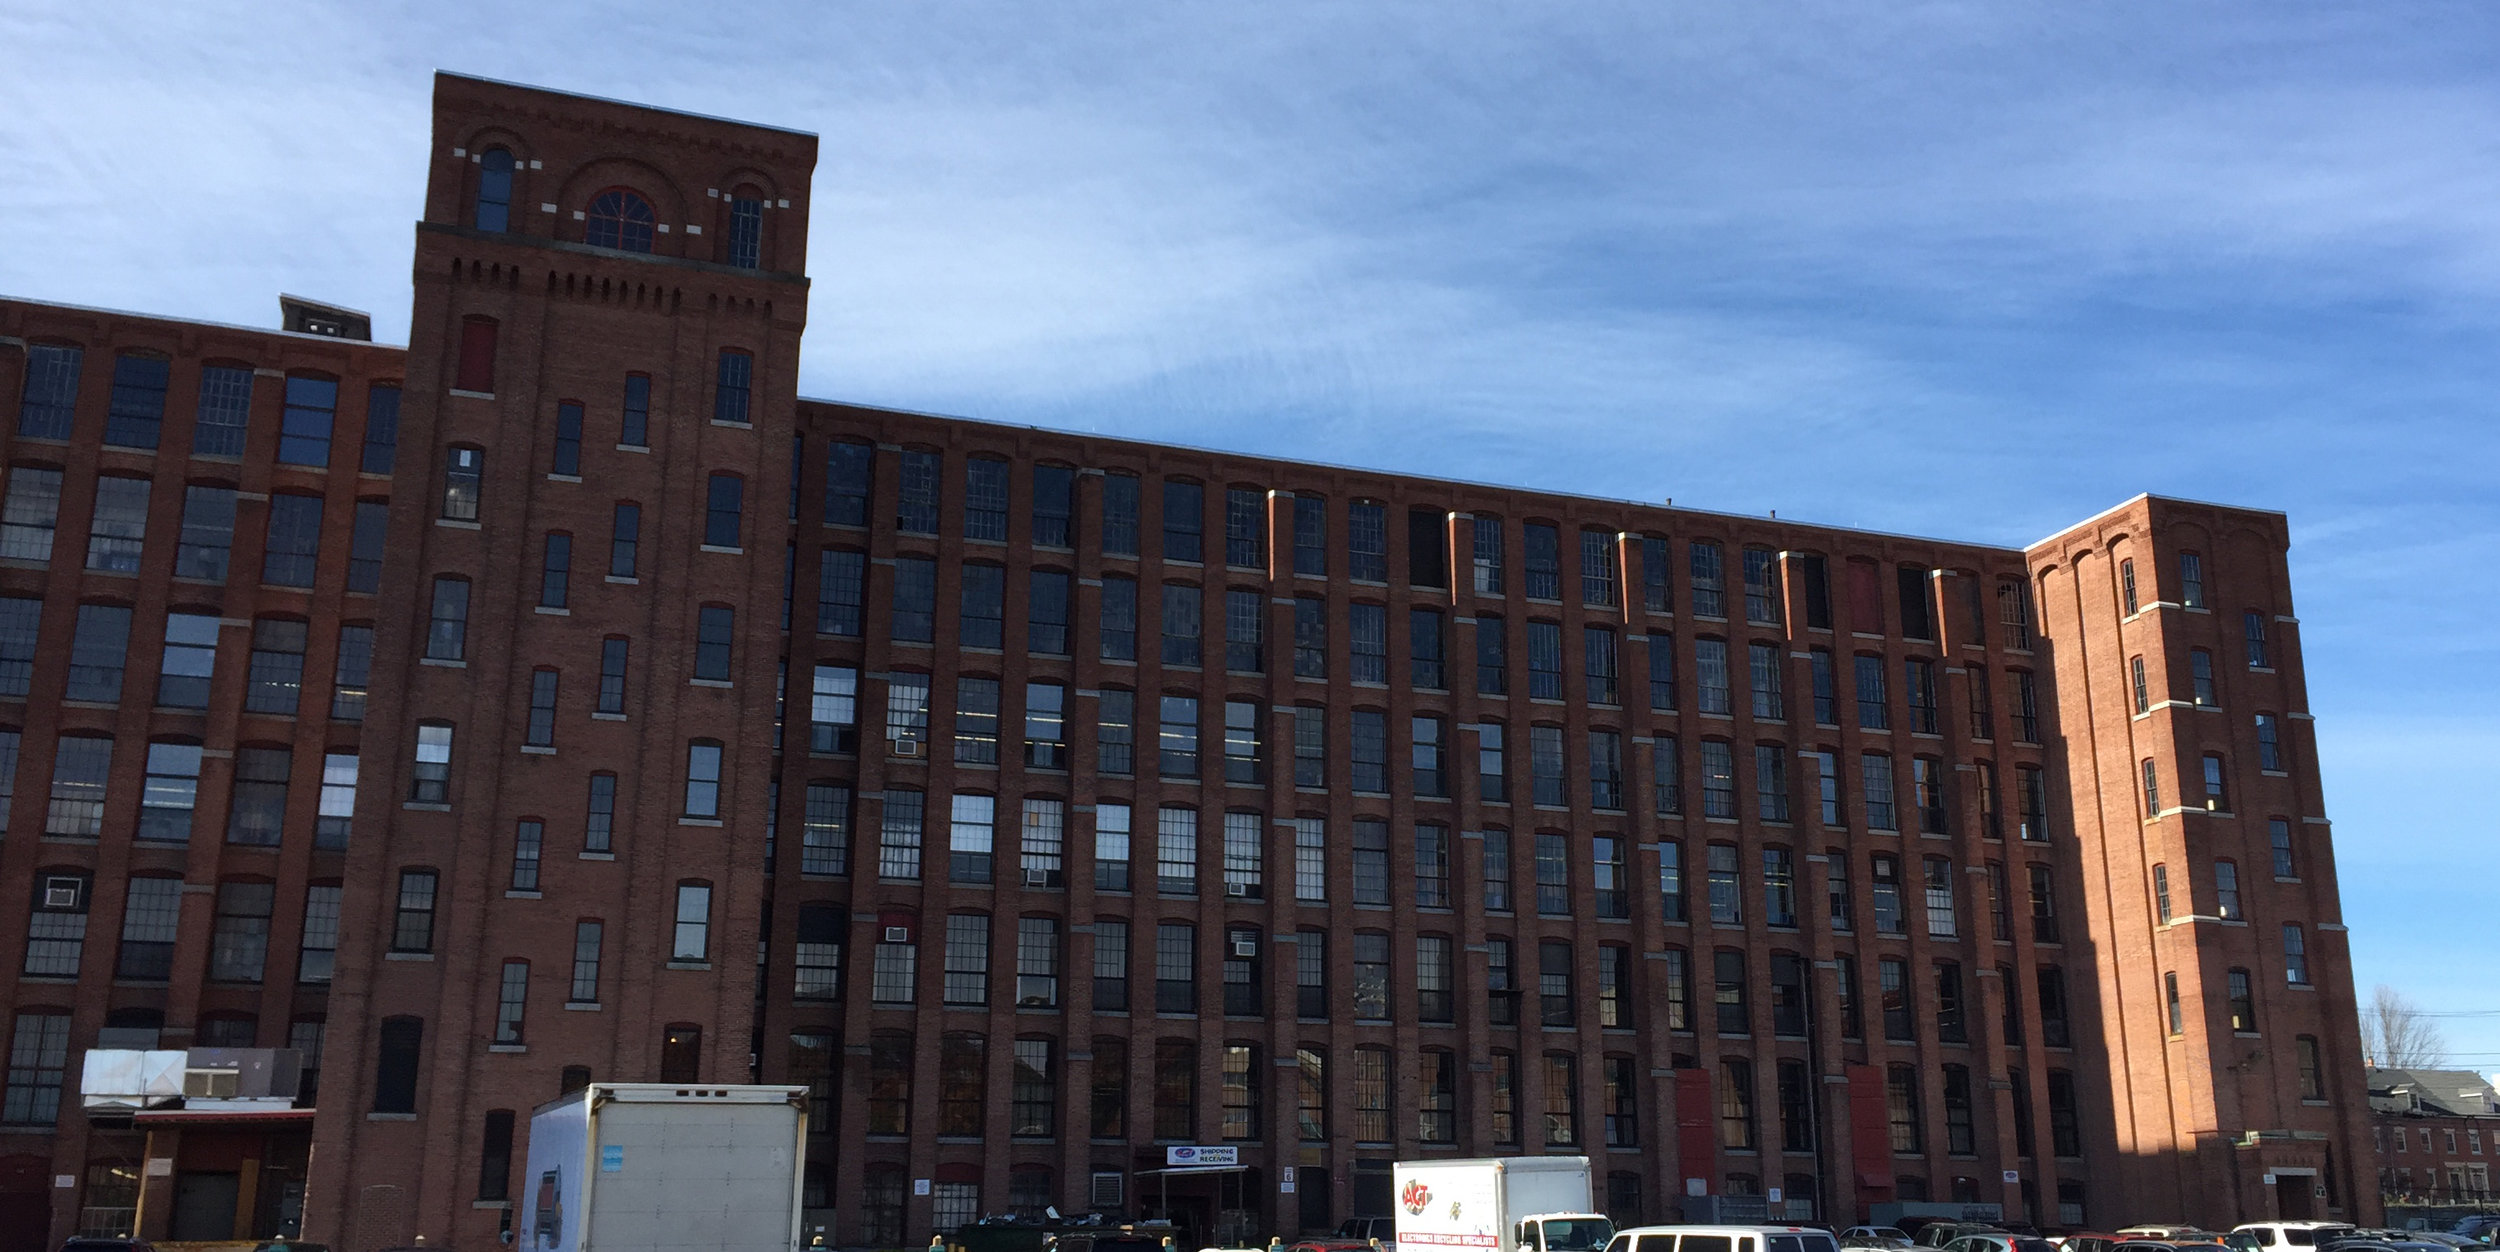 Everett Mills in Lawrence, MA, the former textile mill that's now home to 99Degrees. Photo by Wade Roush.